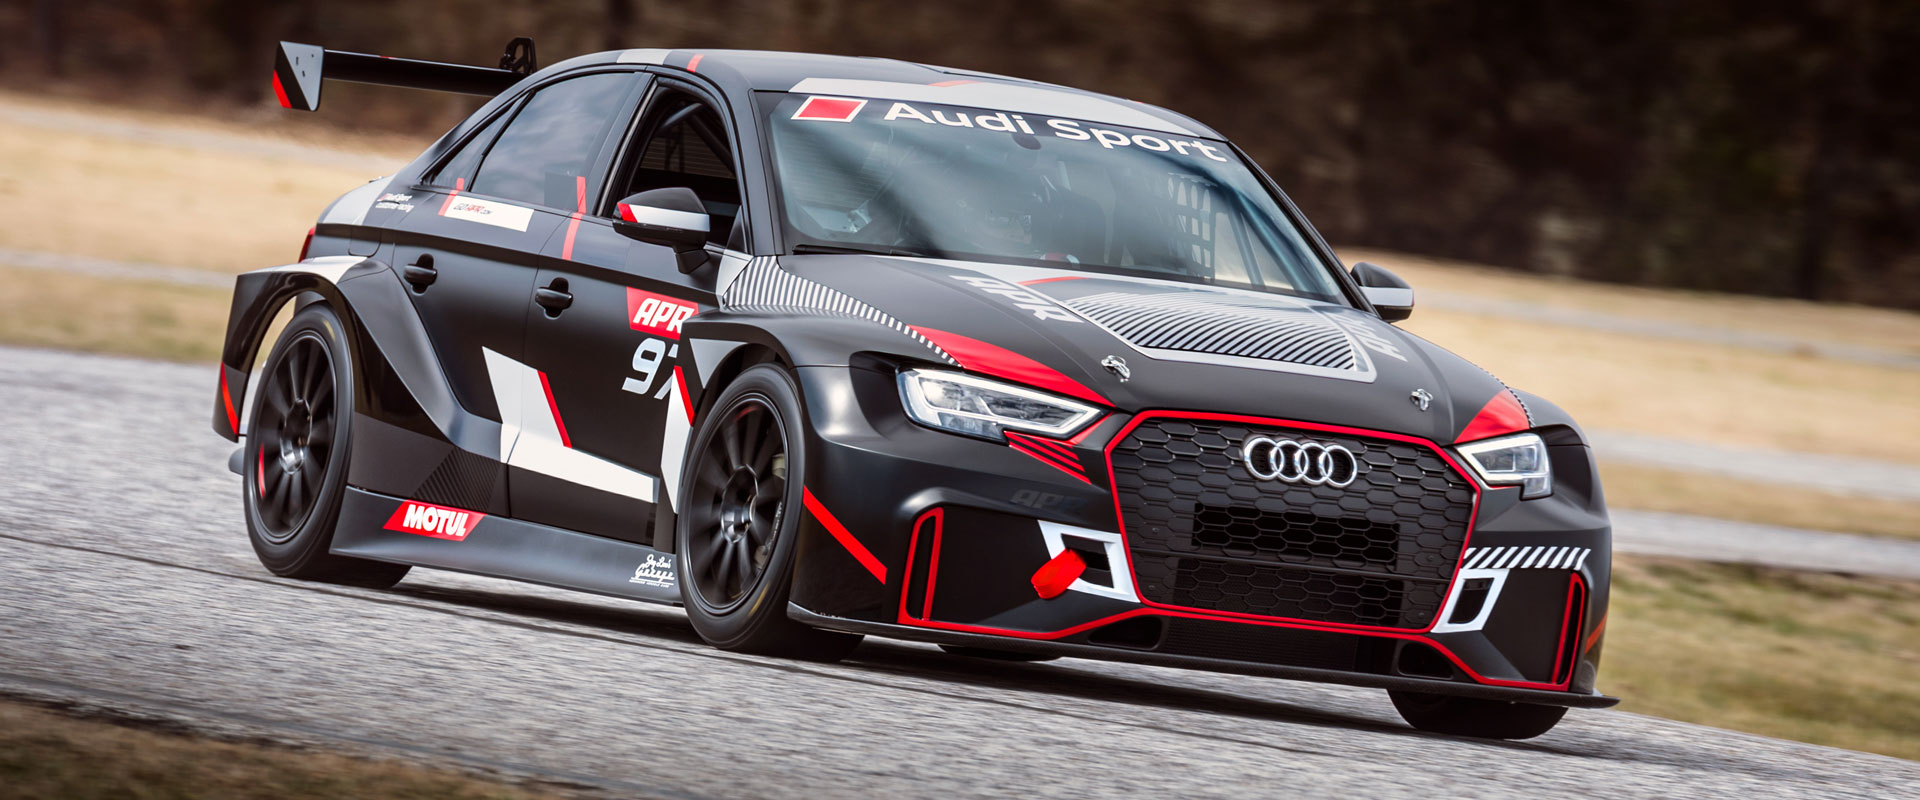 APR RS3 LMS (Front) - Prodigy Motorsport - APR Authorised Dealer